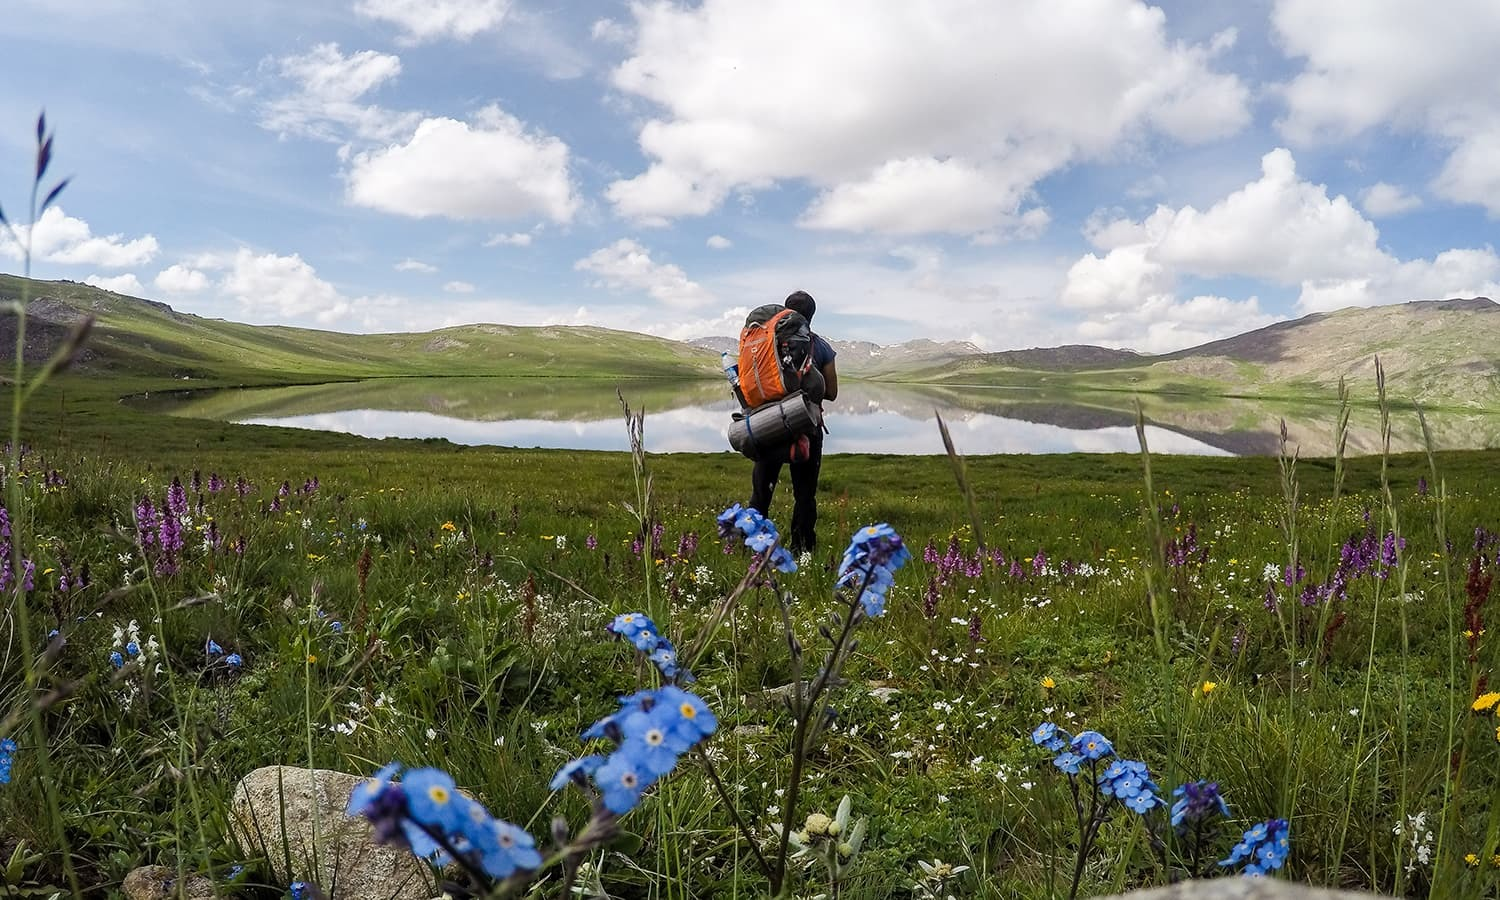 My search for the elusive 'giant' of Deosai